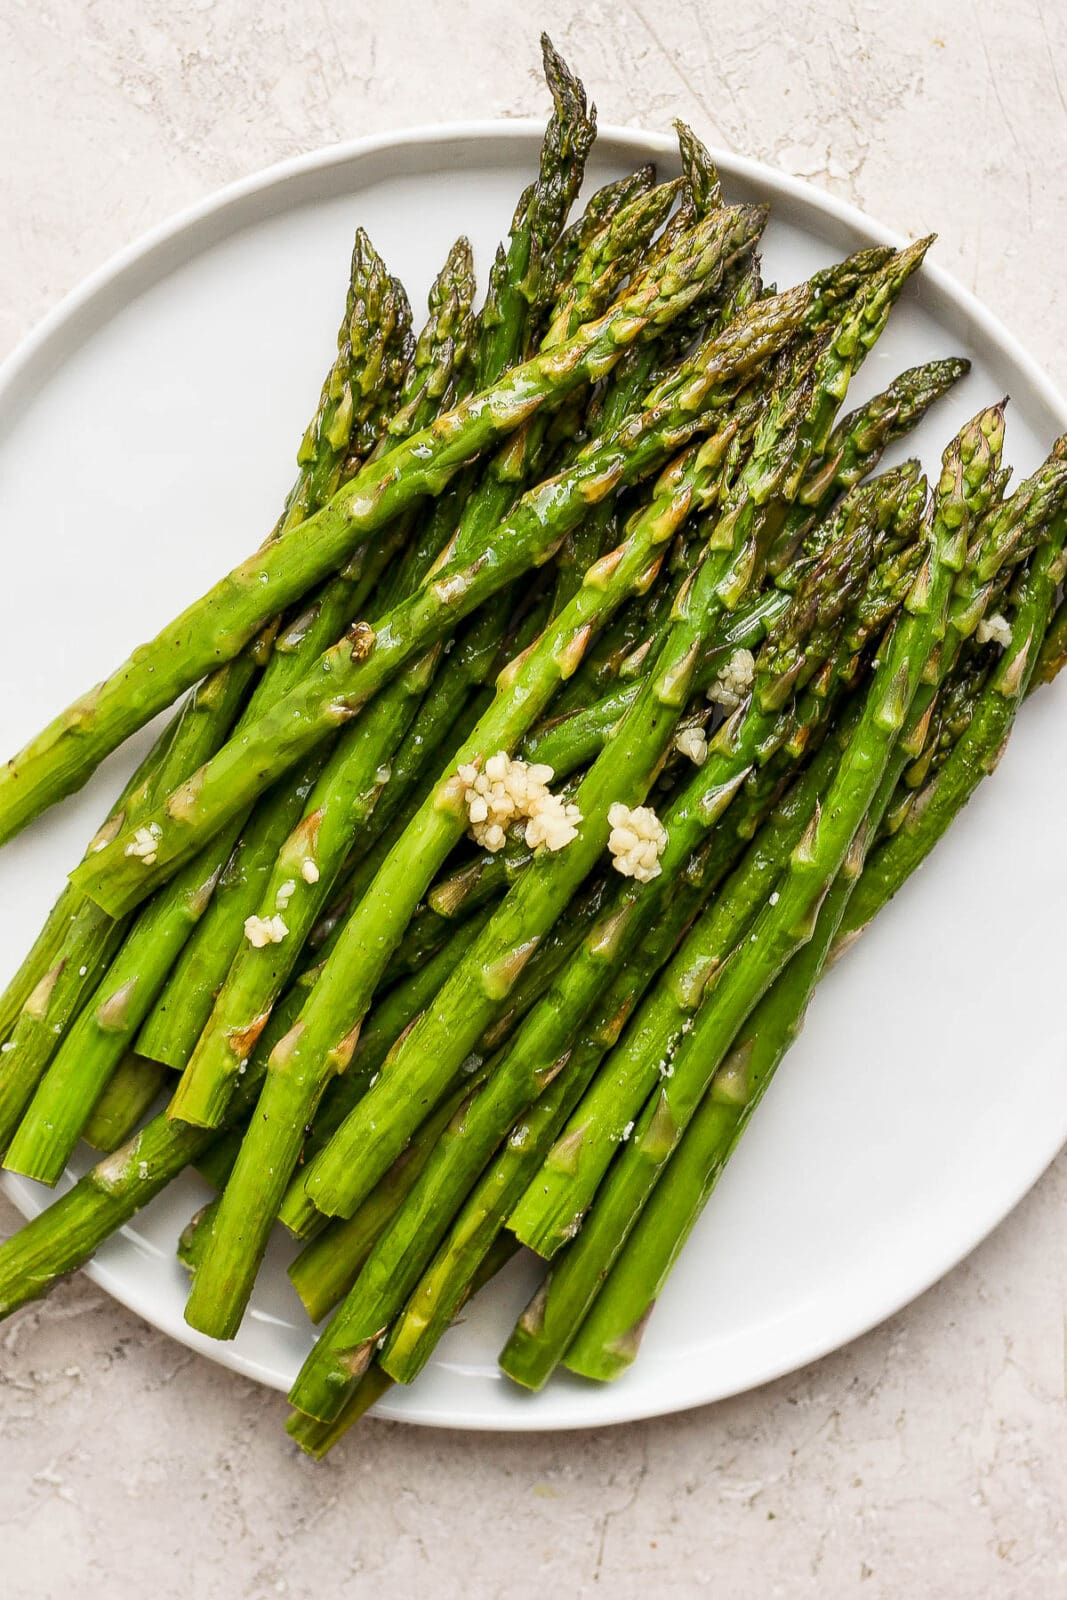 Smoked asparagus on a plate with some added garlic.